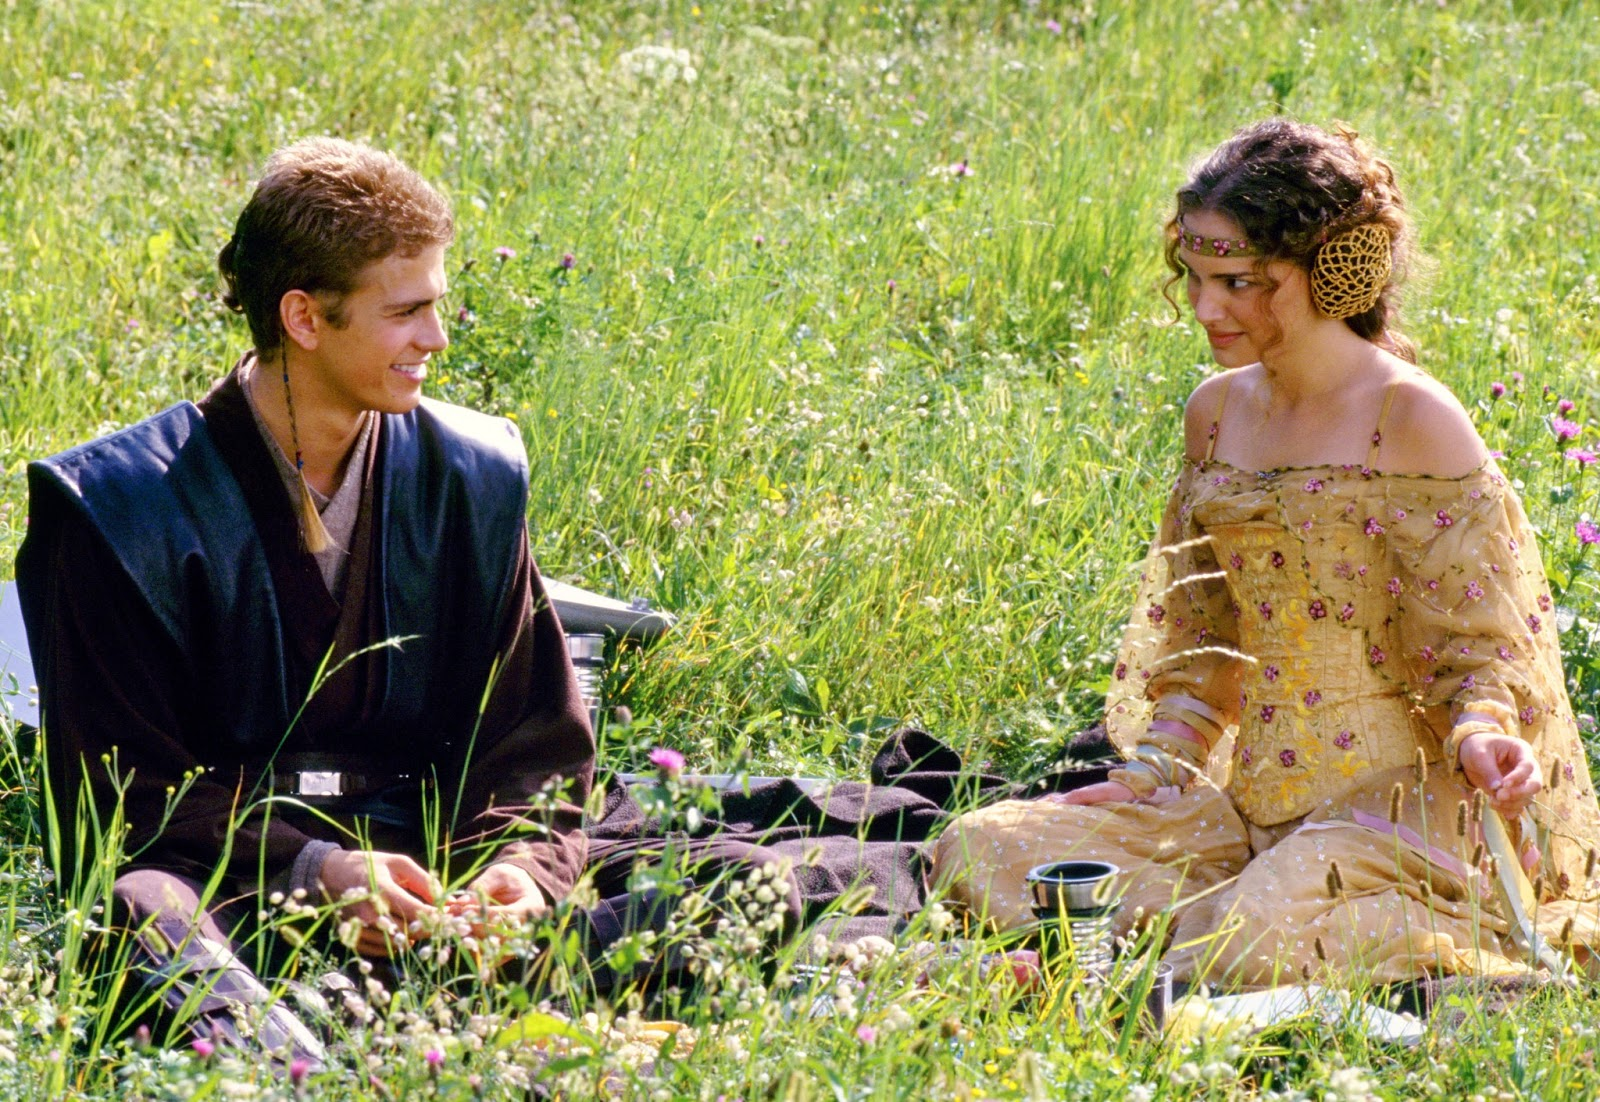 http://4.bp.blogspot.com/-6lzgVIClbvY/UVjgfZy1-fI/AAAAAAAAHyI/UDNvjPpFpGM/s1600/Hayden+Christensen+as+Anakin+Skywalker+and+Natalie+Portman+as+Queen+Padm%C3%A9+Amidala+in+Star+Wars+Episode+II+-+Attack+of+the+Clones+(2002)..jpg